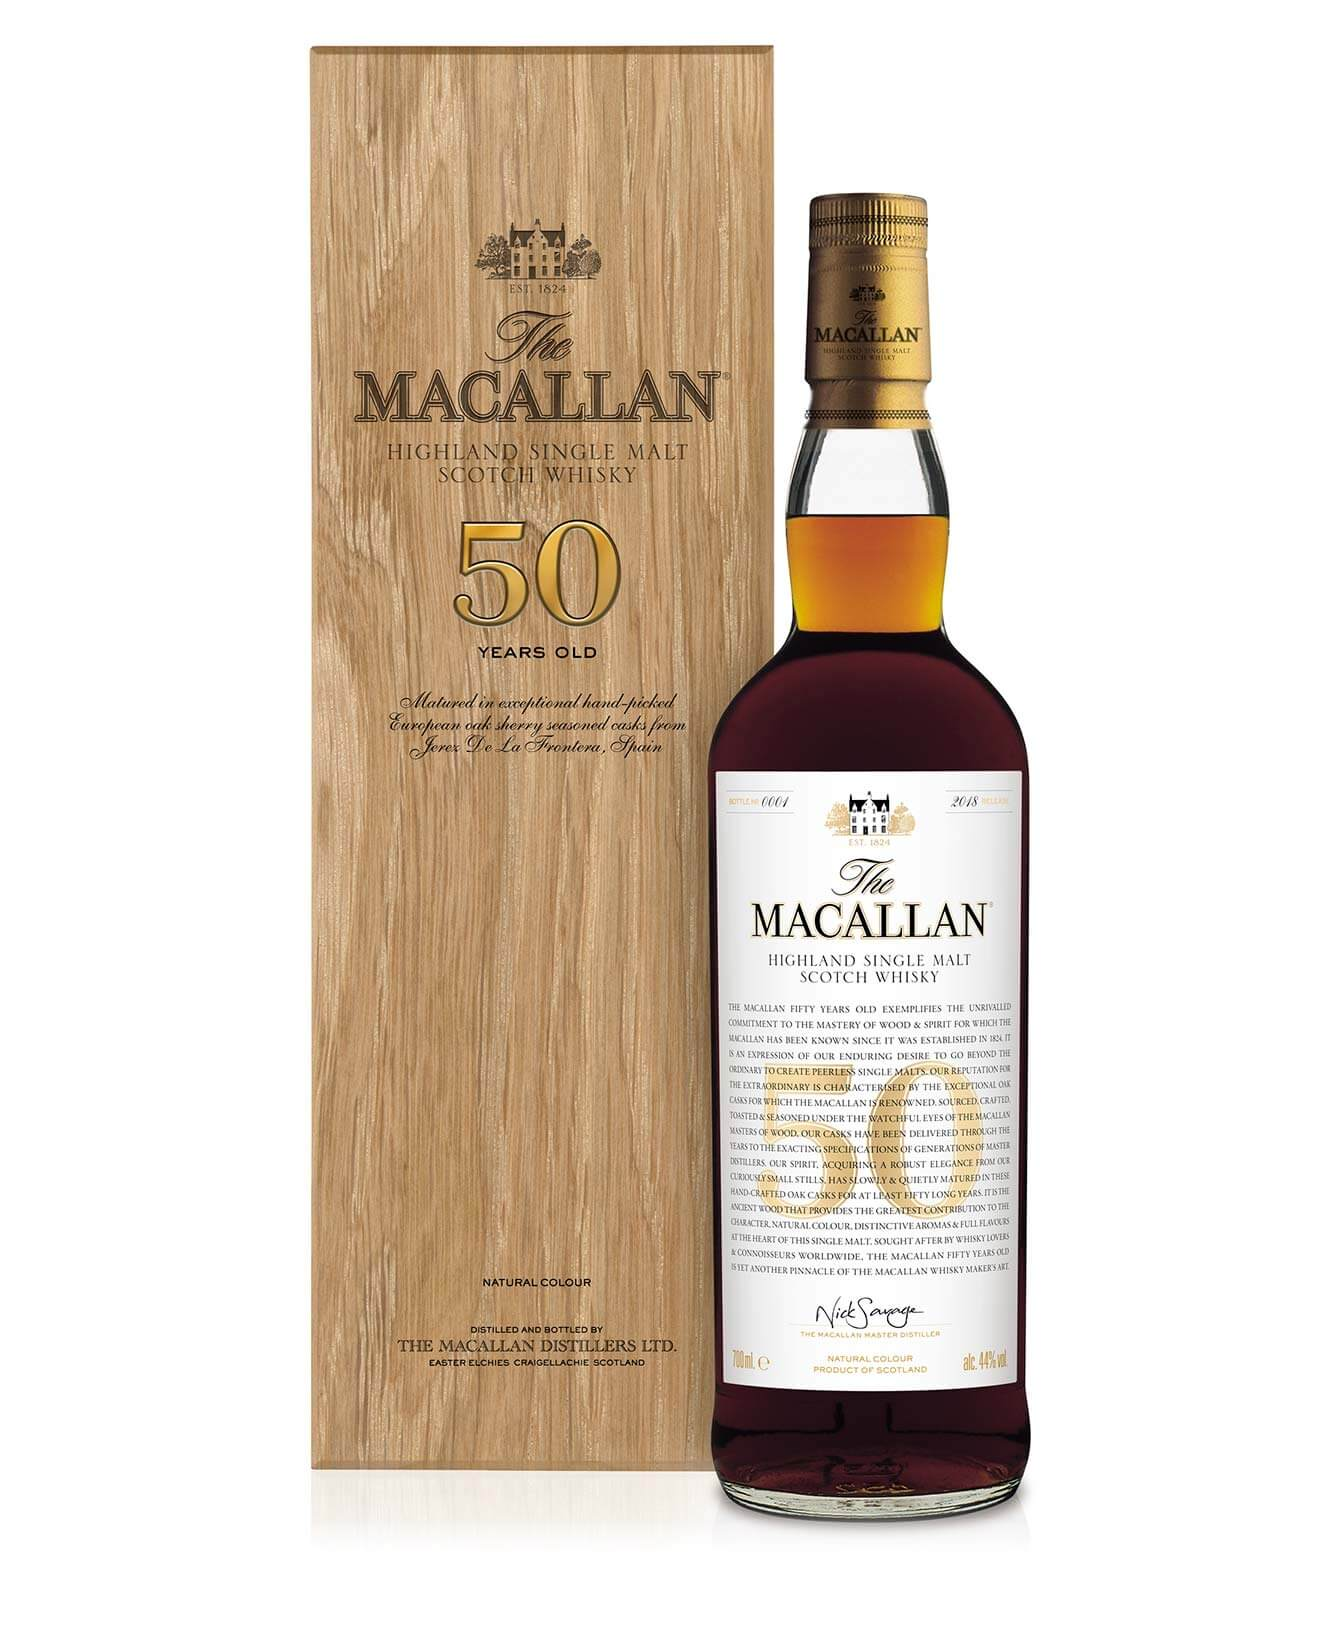 The Macallan 50 Years Old, bottle and package on white,